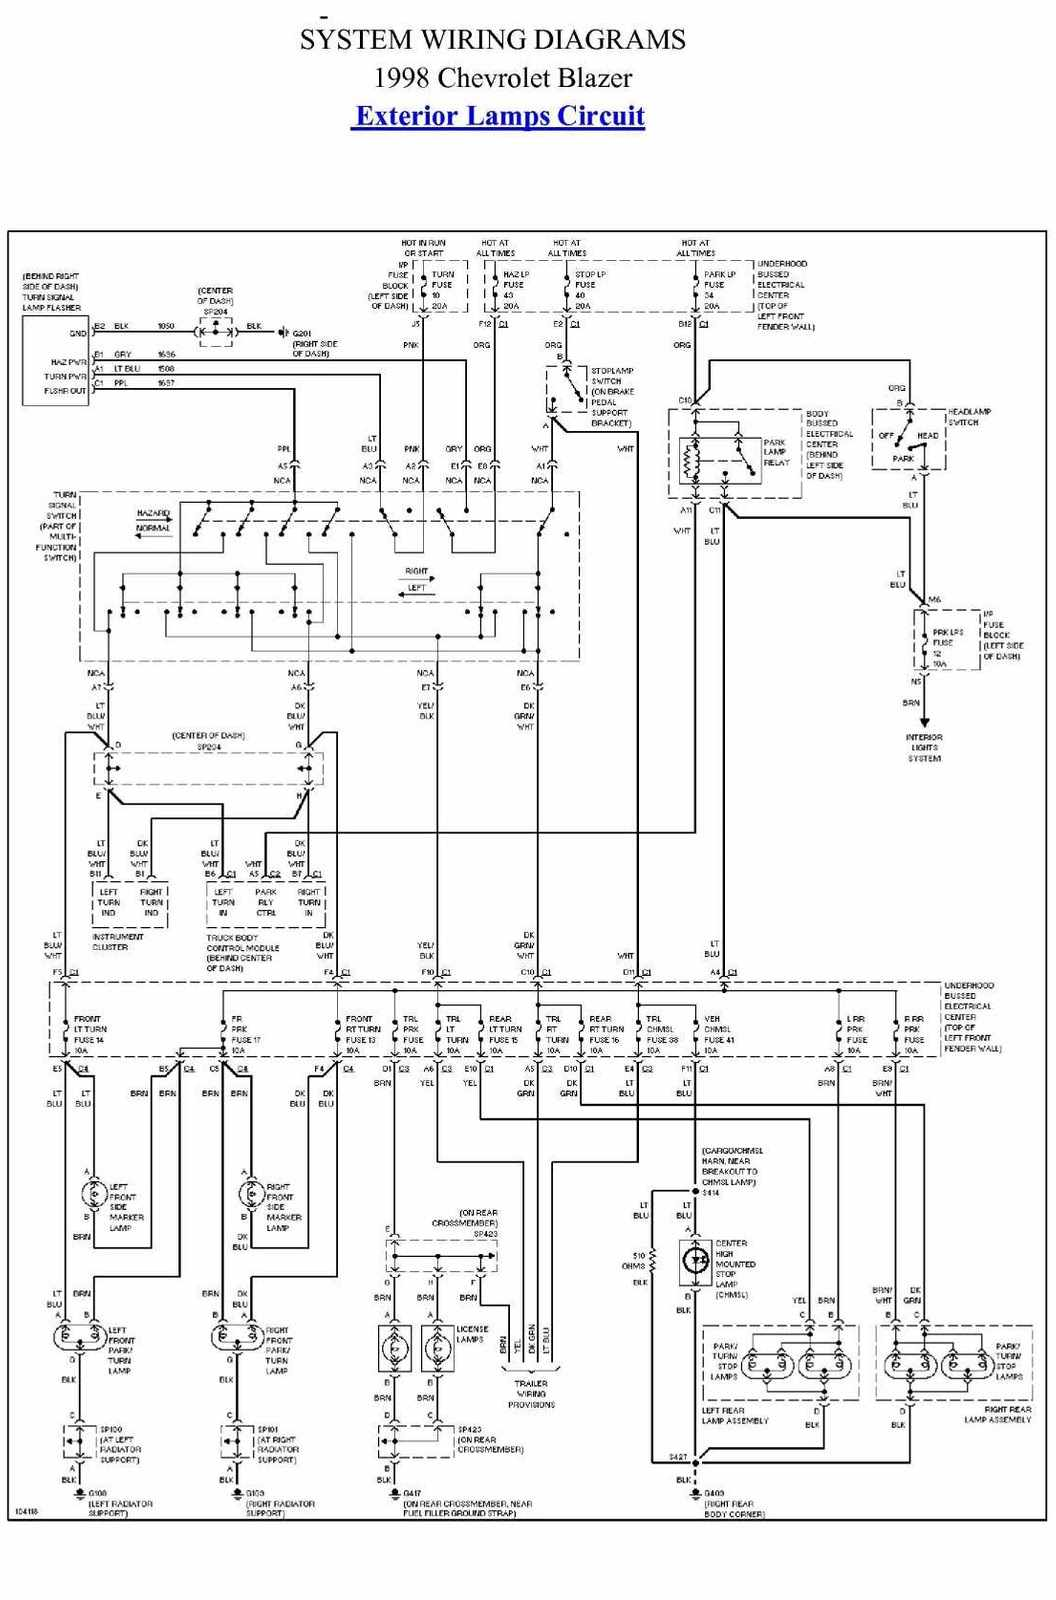 hight resolution of 1998 chevy blazer electrical wiring diagram image details trailer wiring diagram 1998 blazer wiring diagram